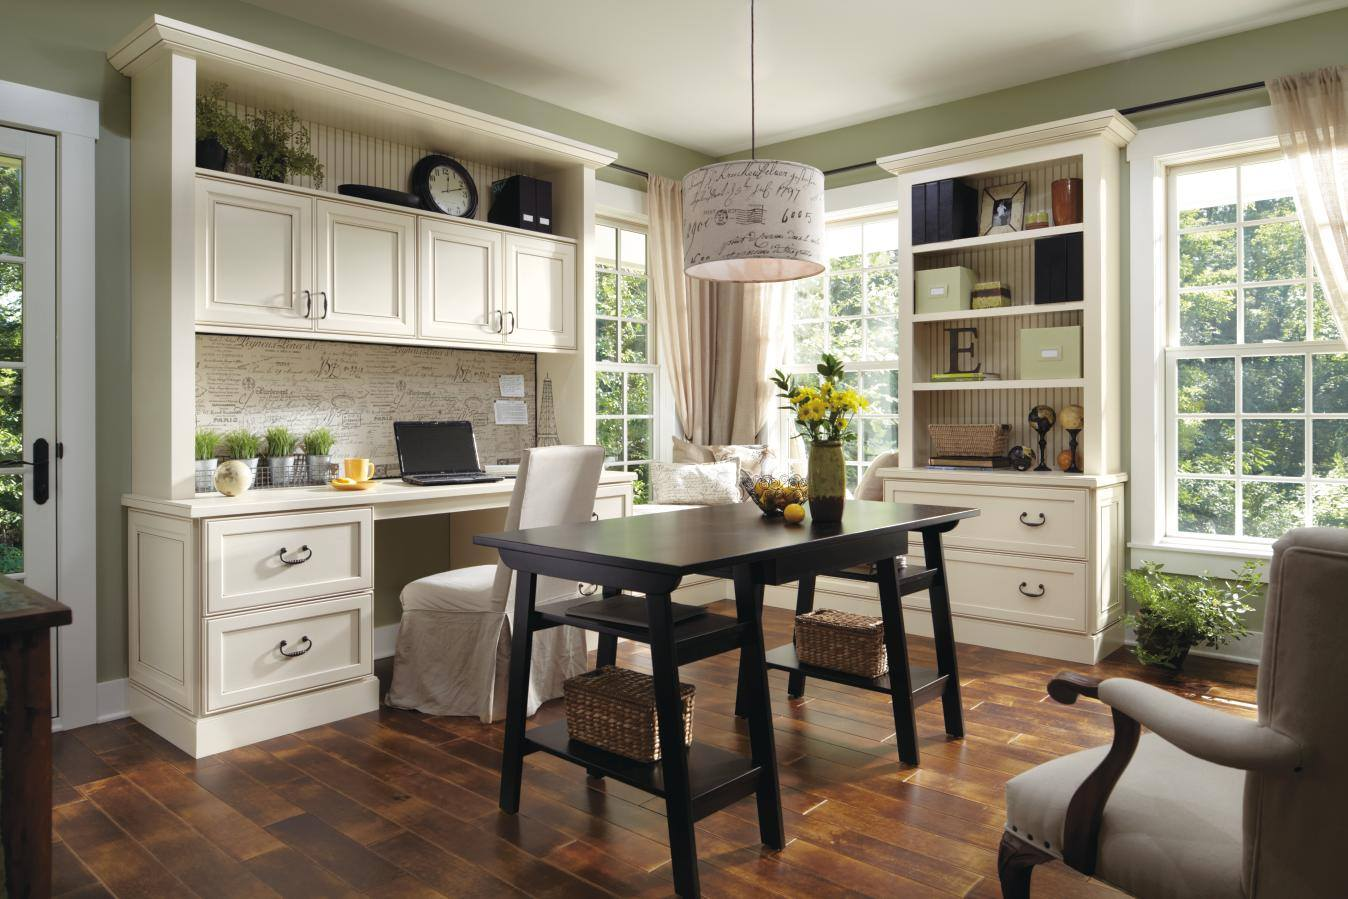 Living Dining Room Cabinets: Living Room - Dining Area